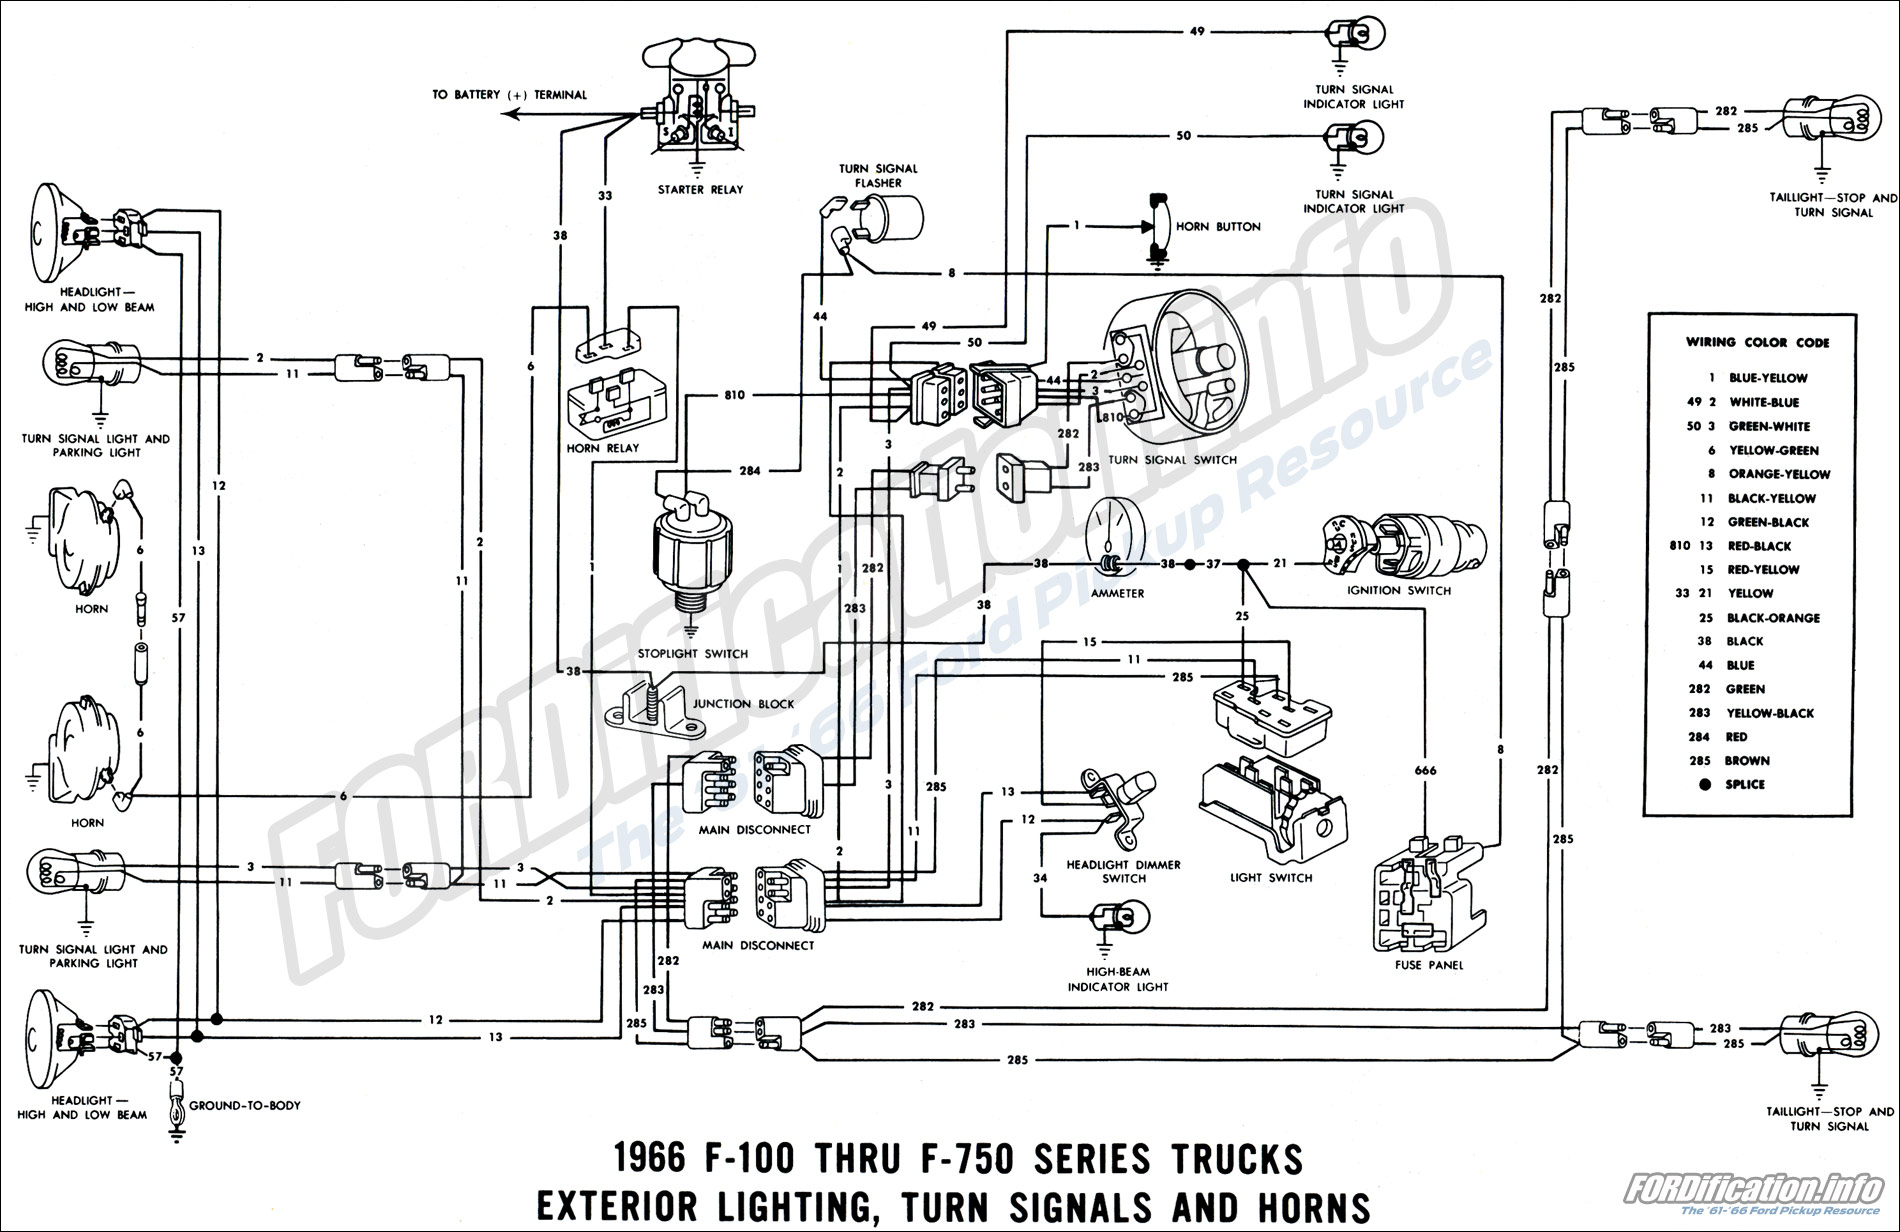 [WRG-4838] Wiring Diagram For 1966 Ford Truck